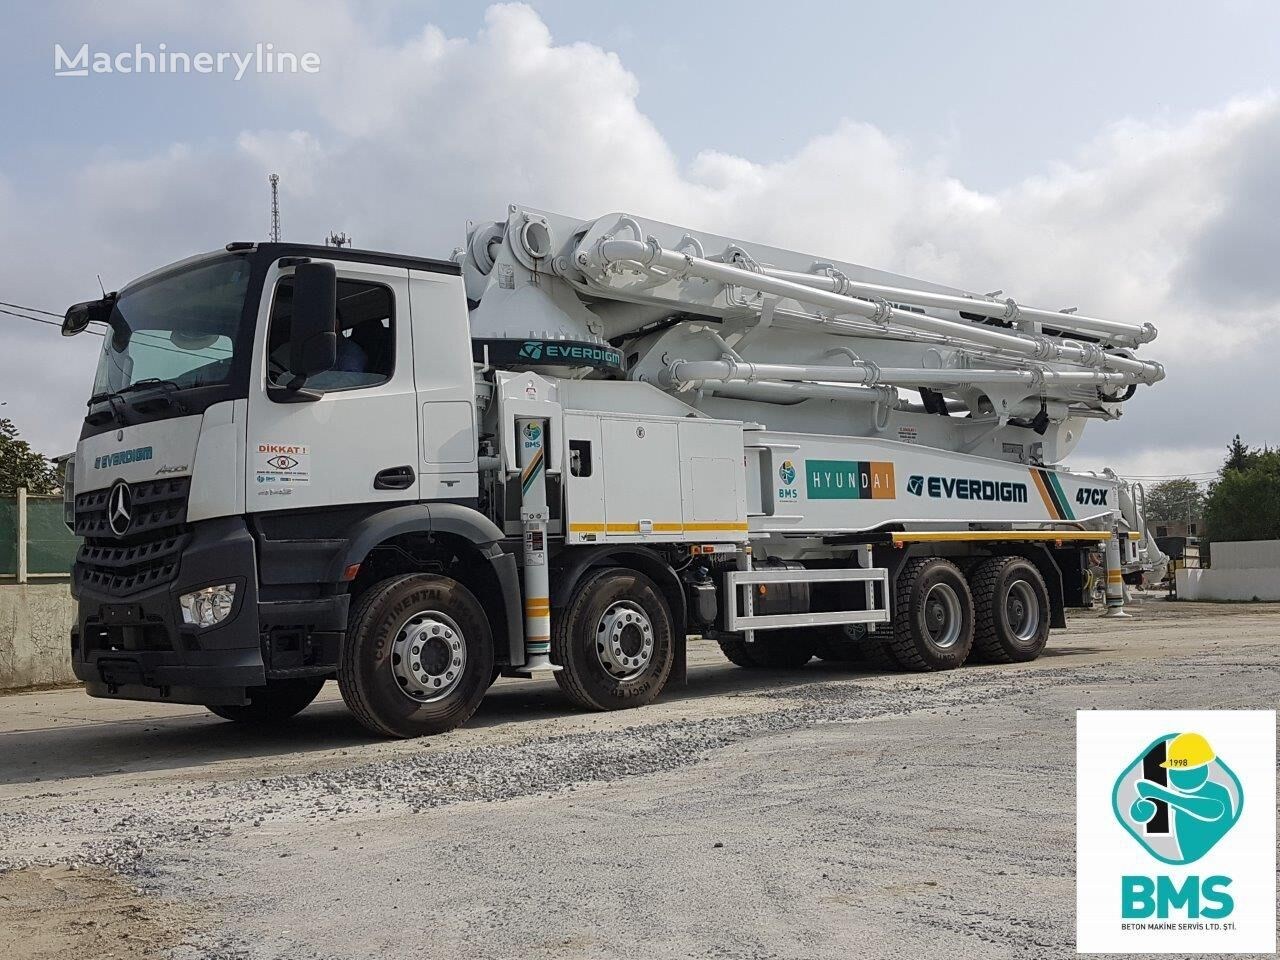 new MERCEDES-BENZ ECP 47 CX 5 concrete pump